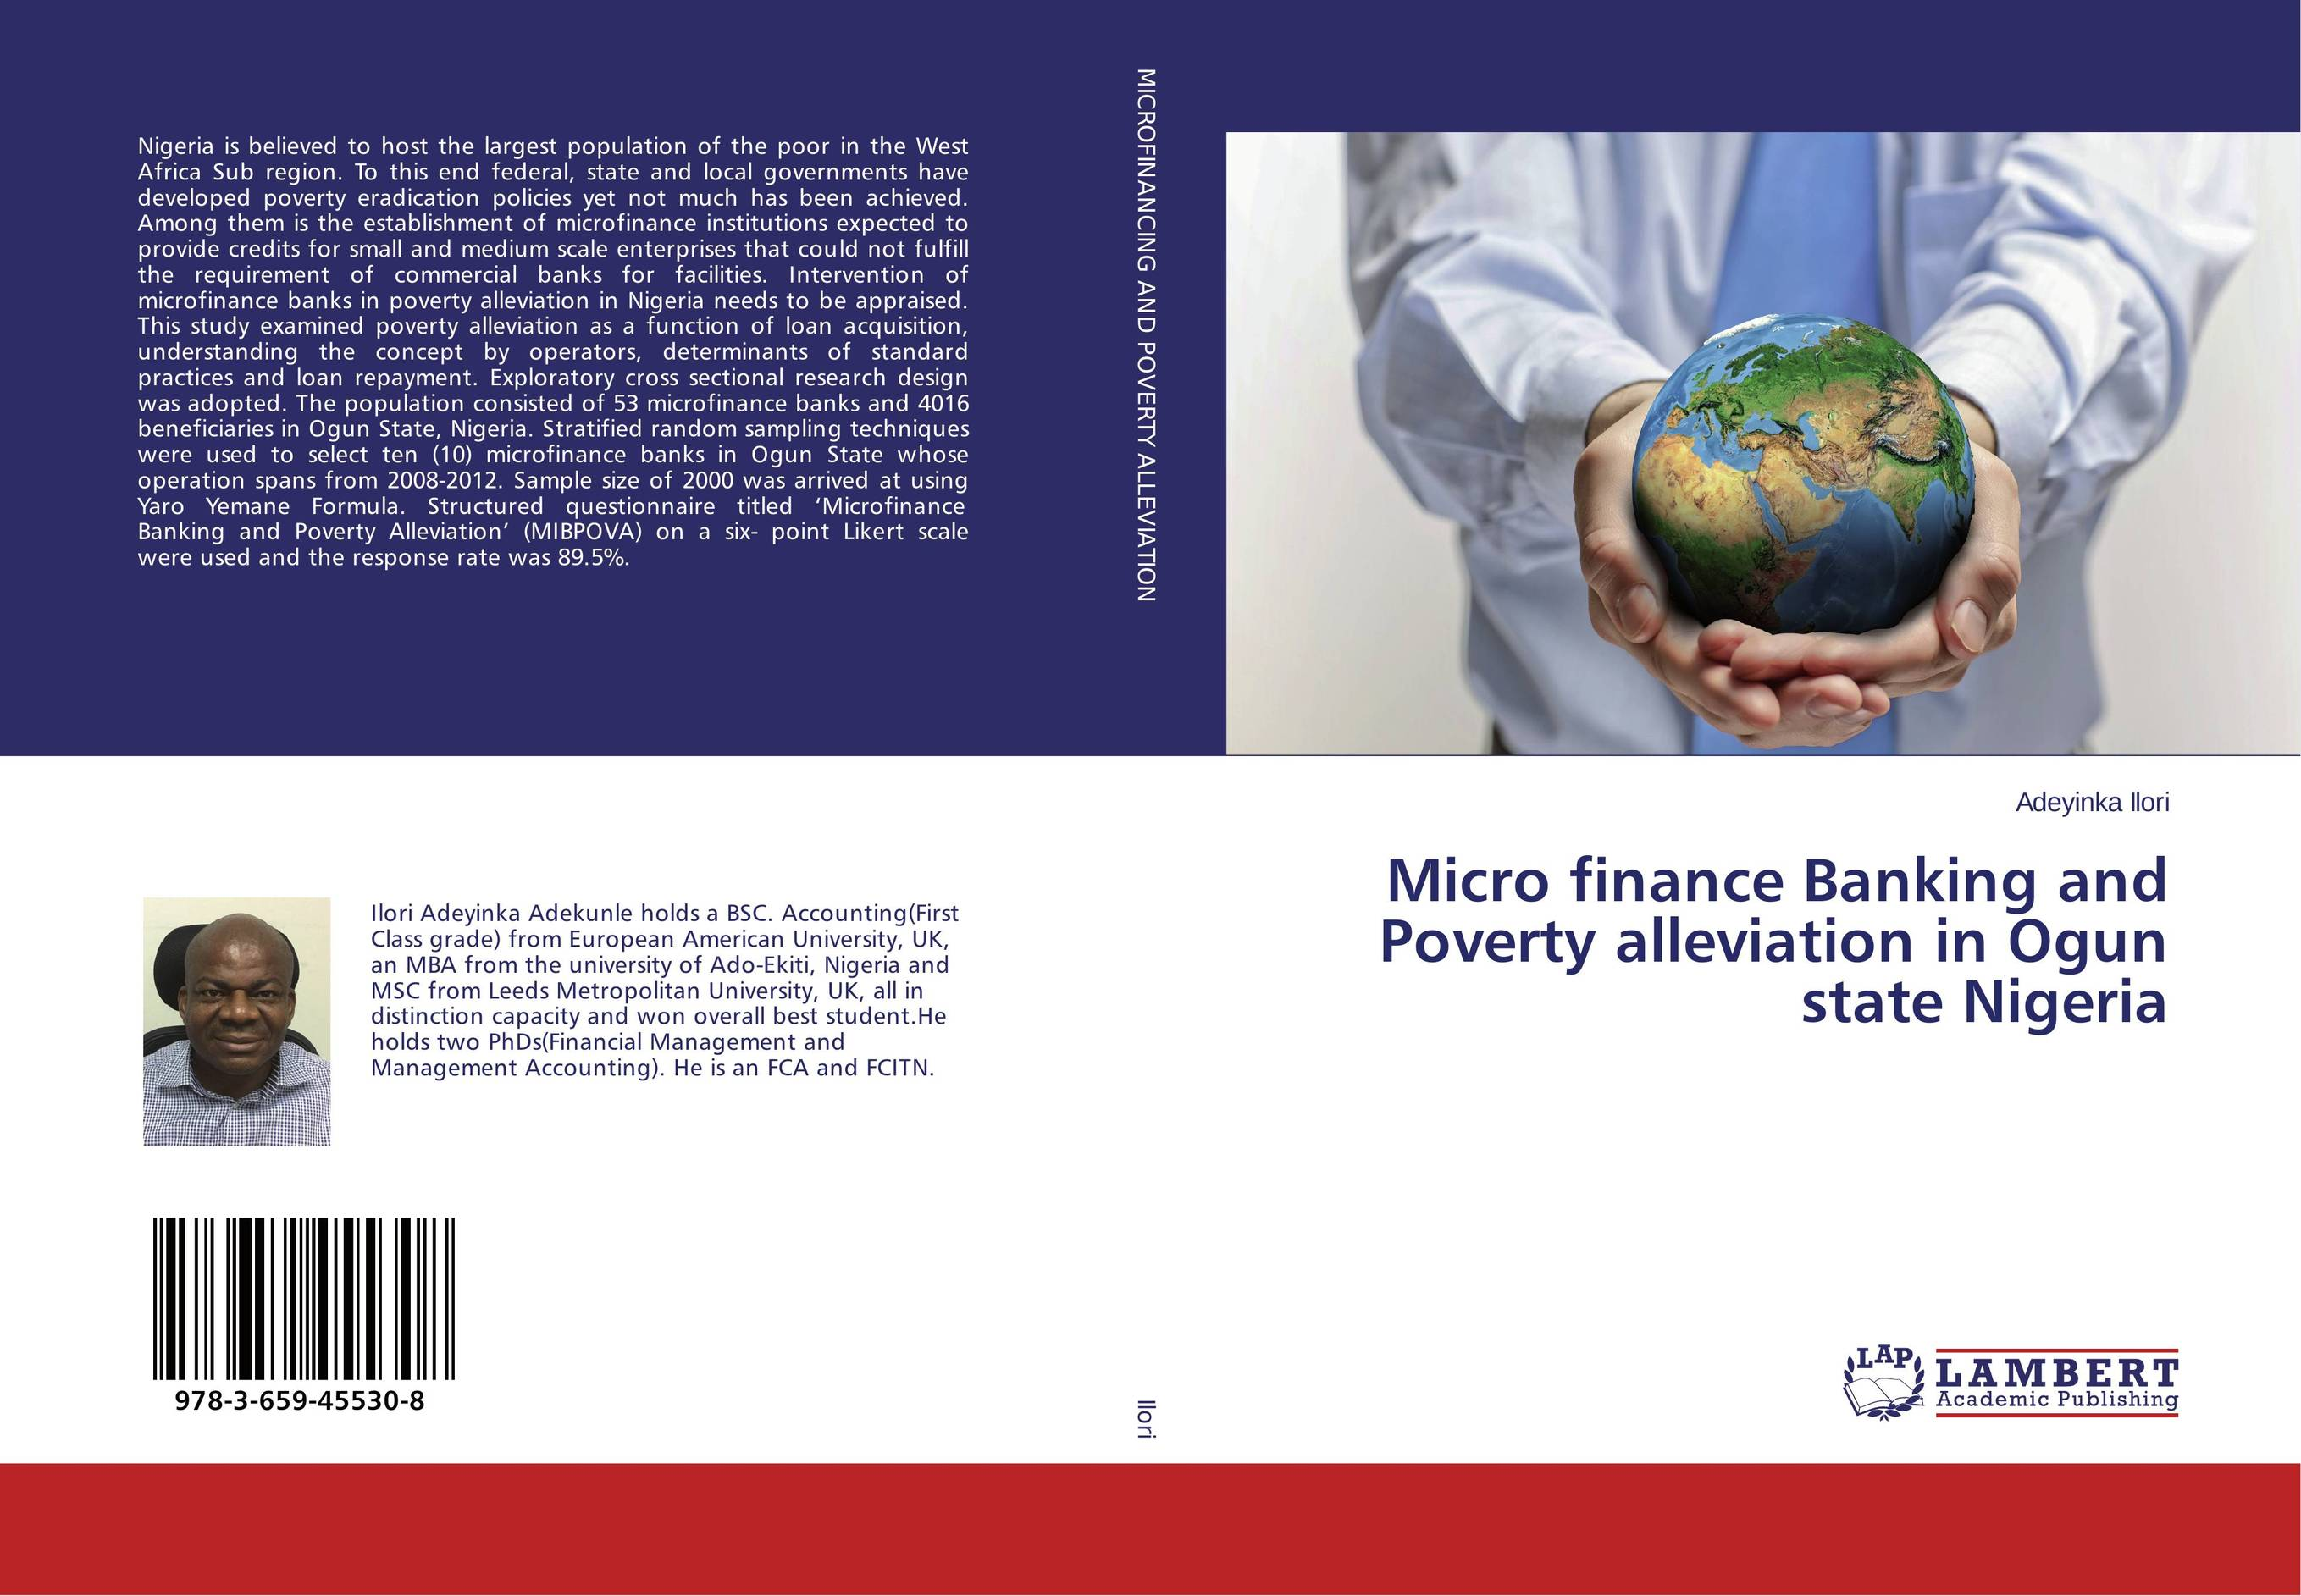 Micro finance Banking and Poverty alleviation in Ogun state Nigeria role of ict in rural poverty alleviation